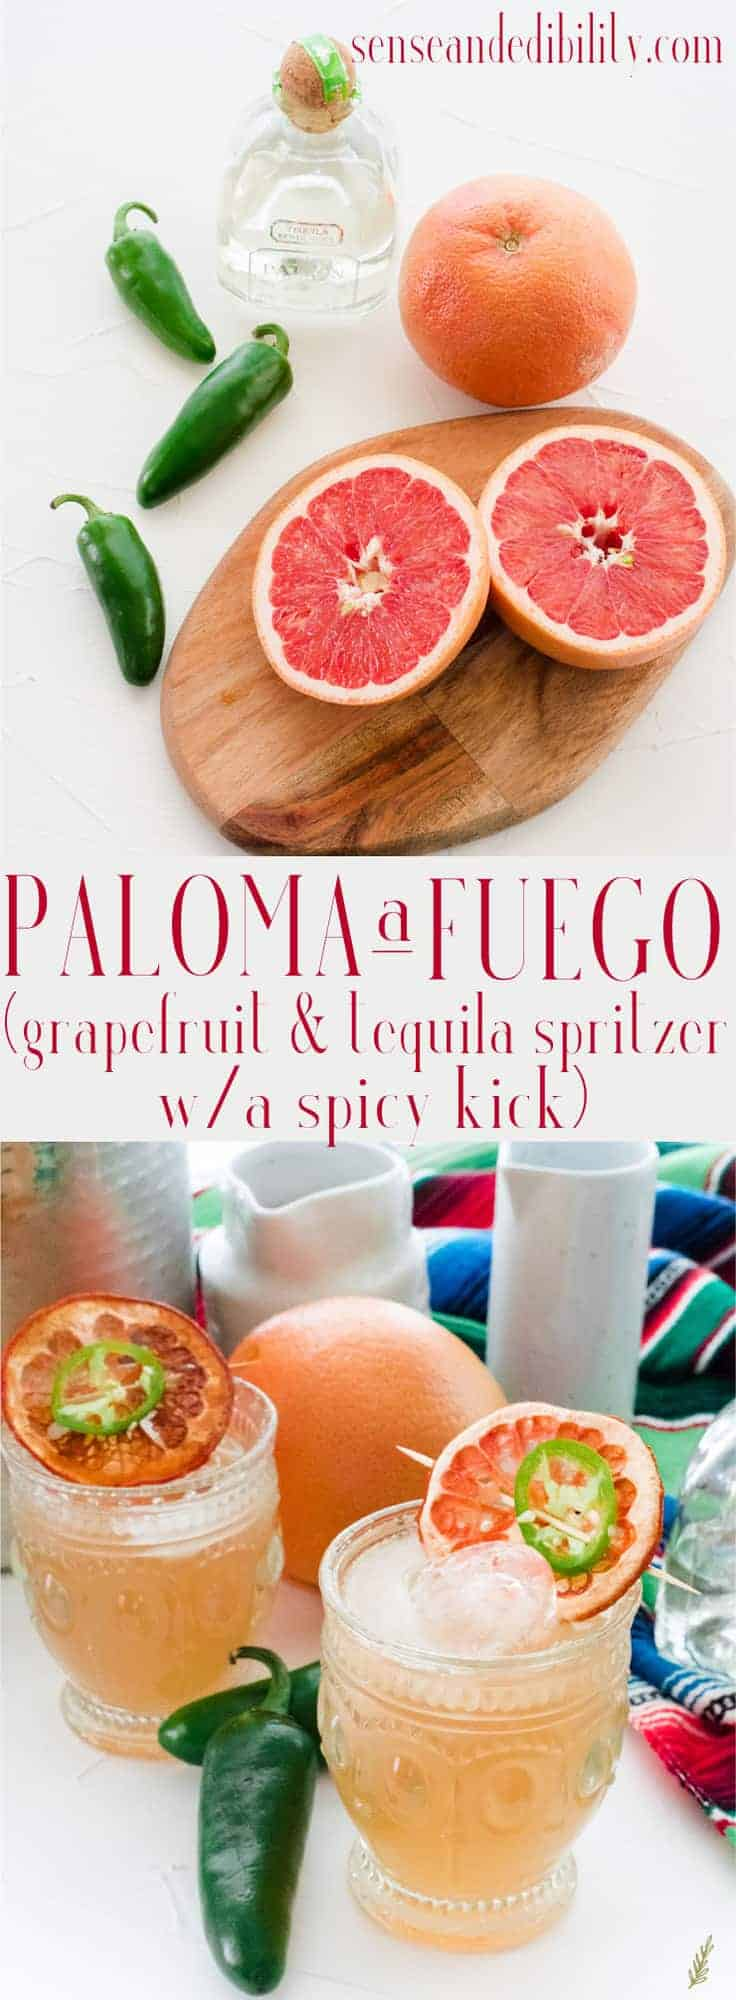 My version of the crisp Mexican cocktail, Paloma, has a fiery kick thanks to jalapeños! #paloma #tequila #cocktails #libations # Mexican #cincodemayo #senseandedibility via @ediblesense